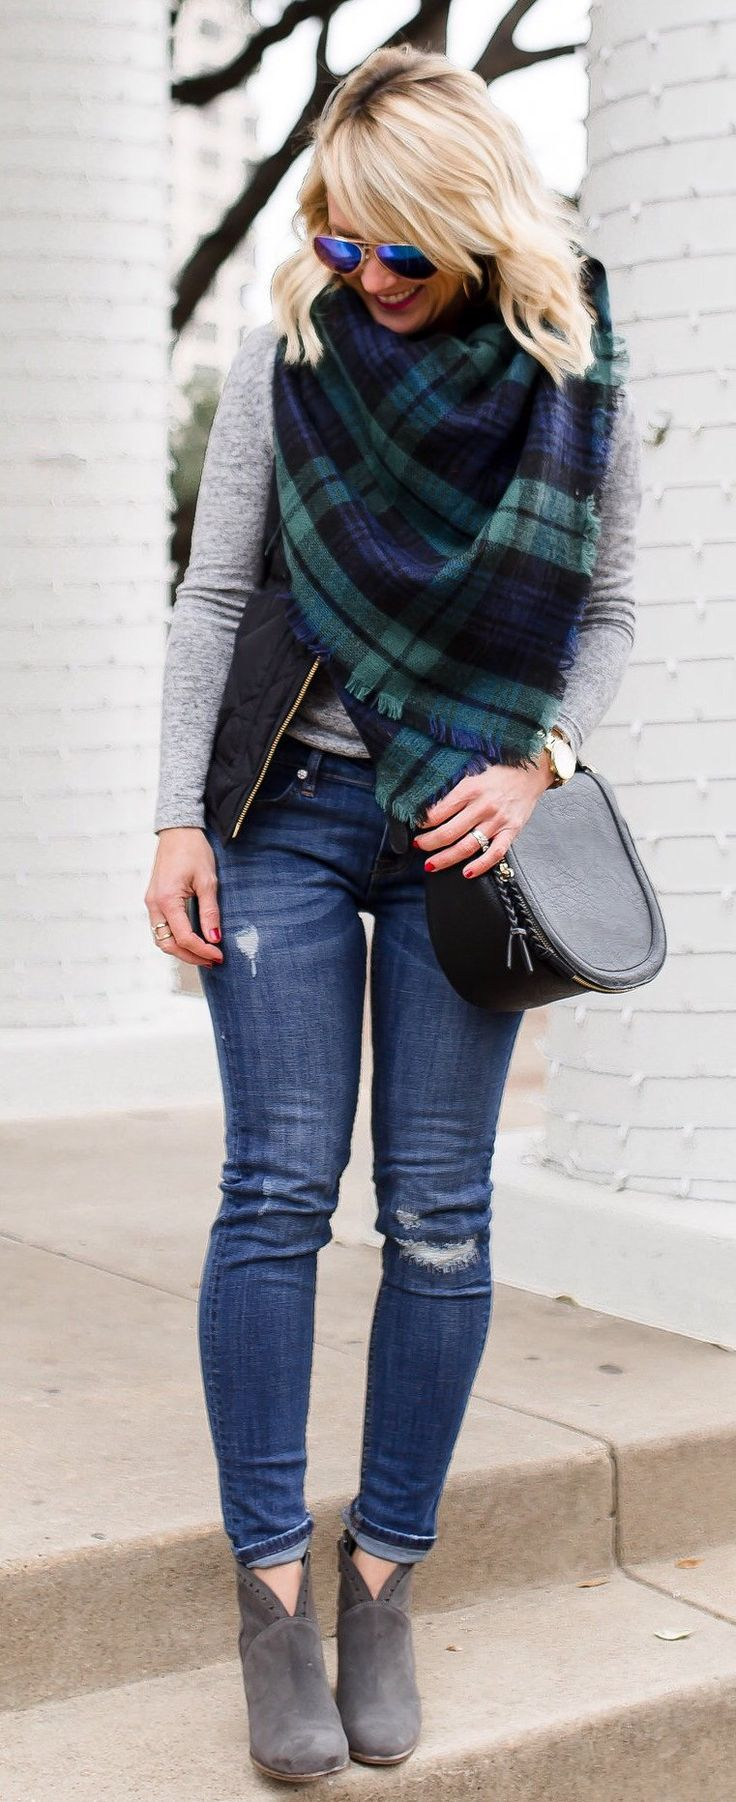 Printed Scarf / Grey Knit / Black Vest / Ripped Skinny Jeans / Grey Suede Booties